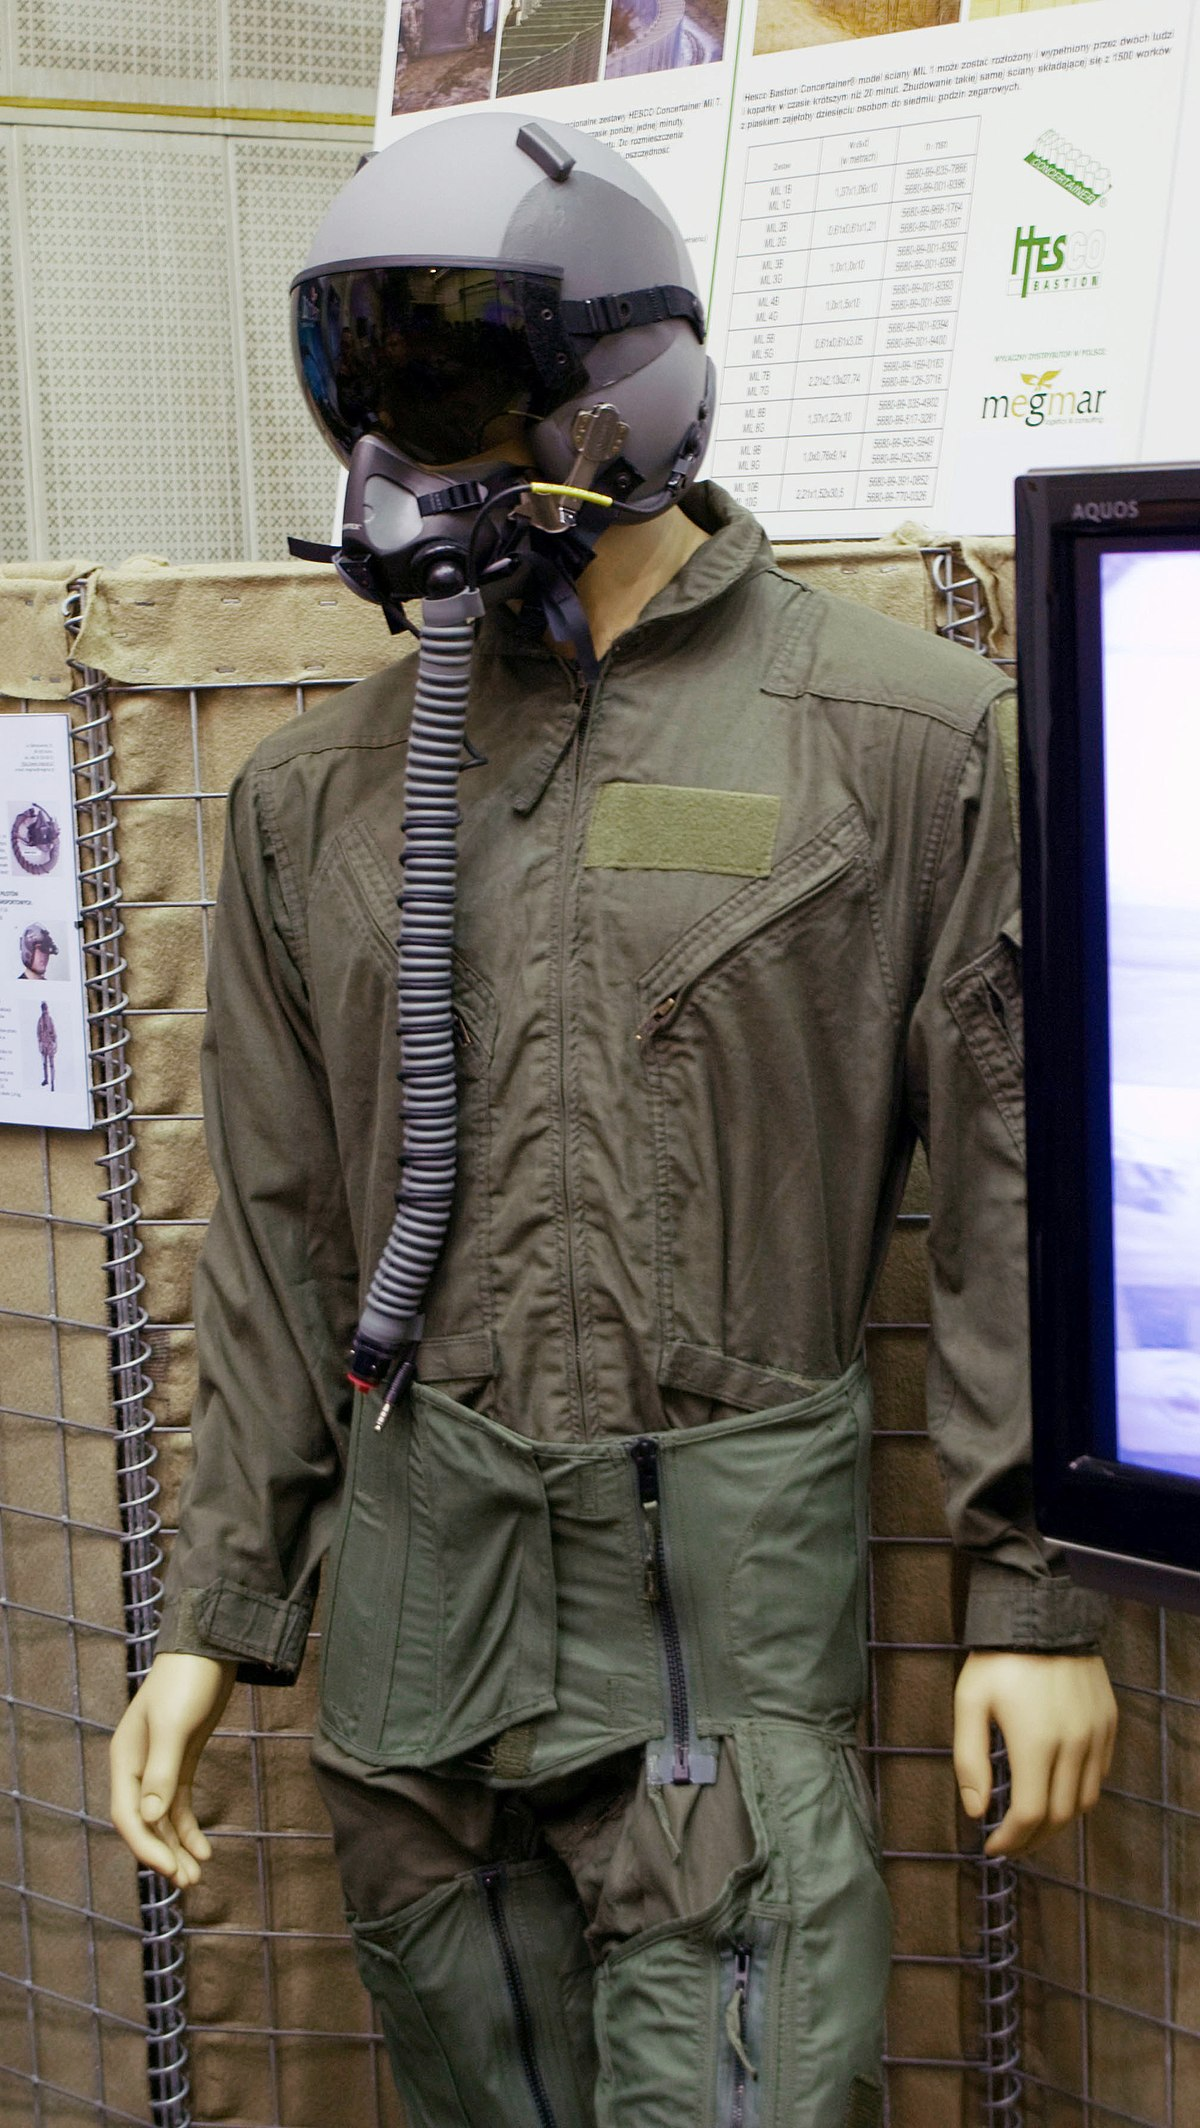 g-suit - Wikipedia